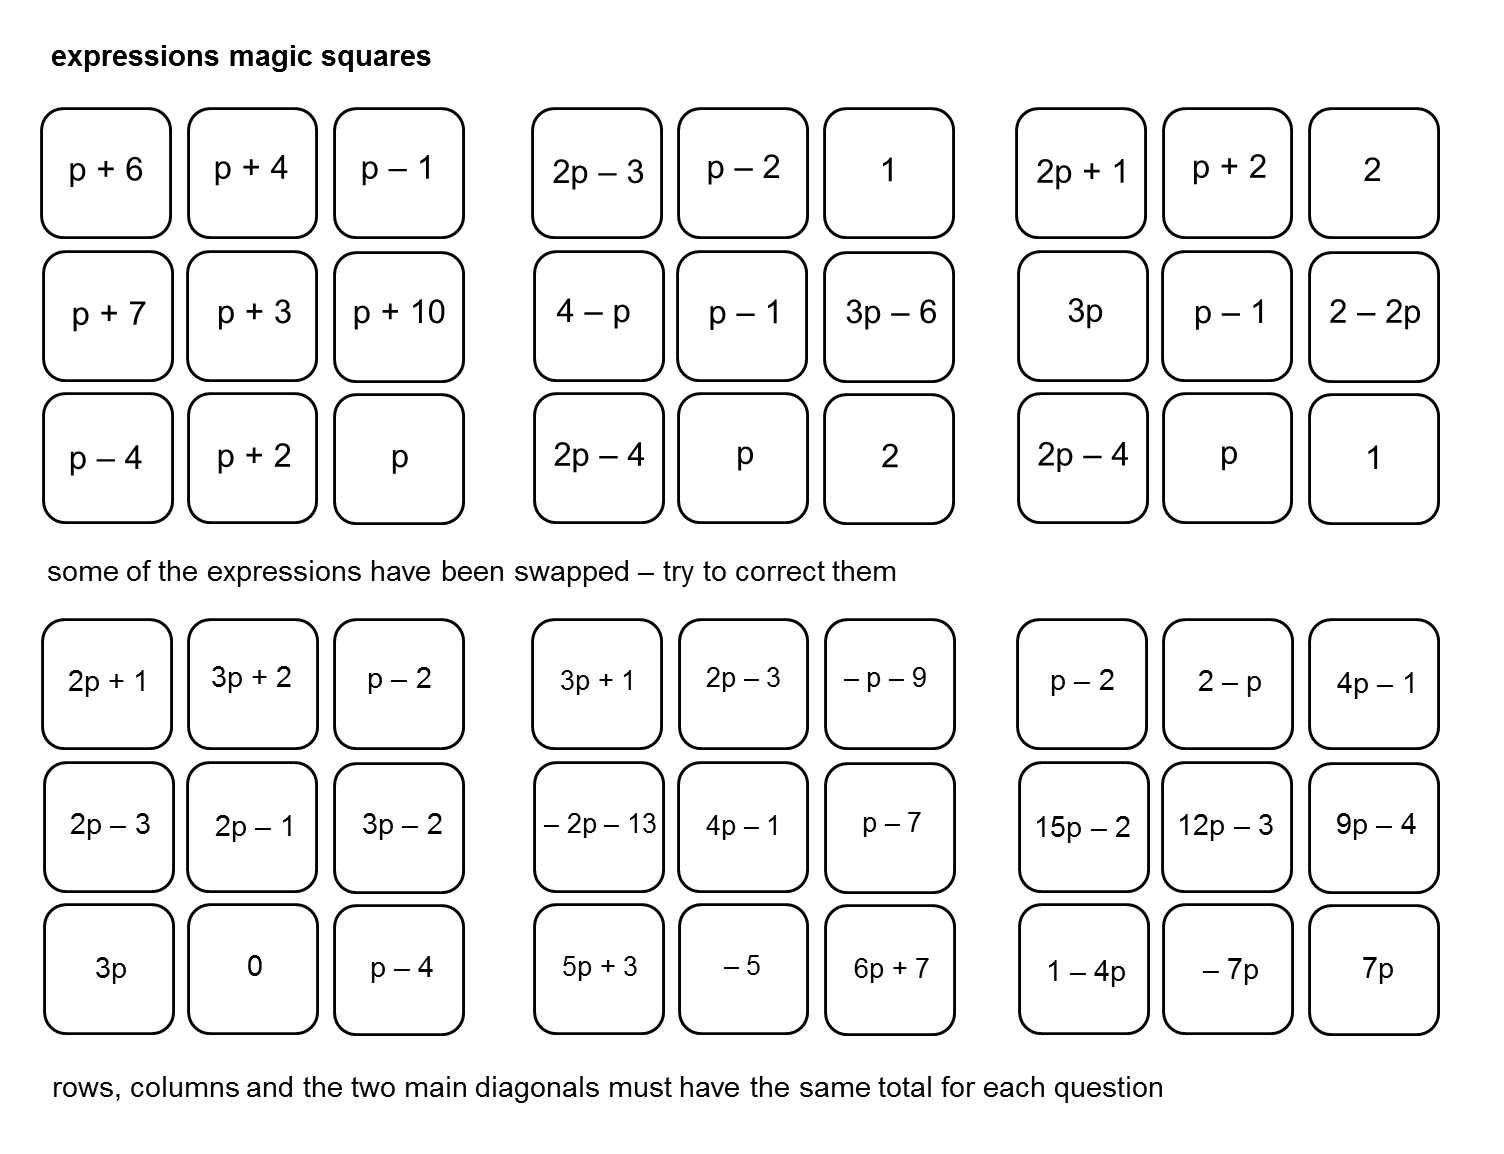 MEDIAN Don Steward mathematics teaching: more expressions